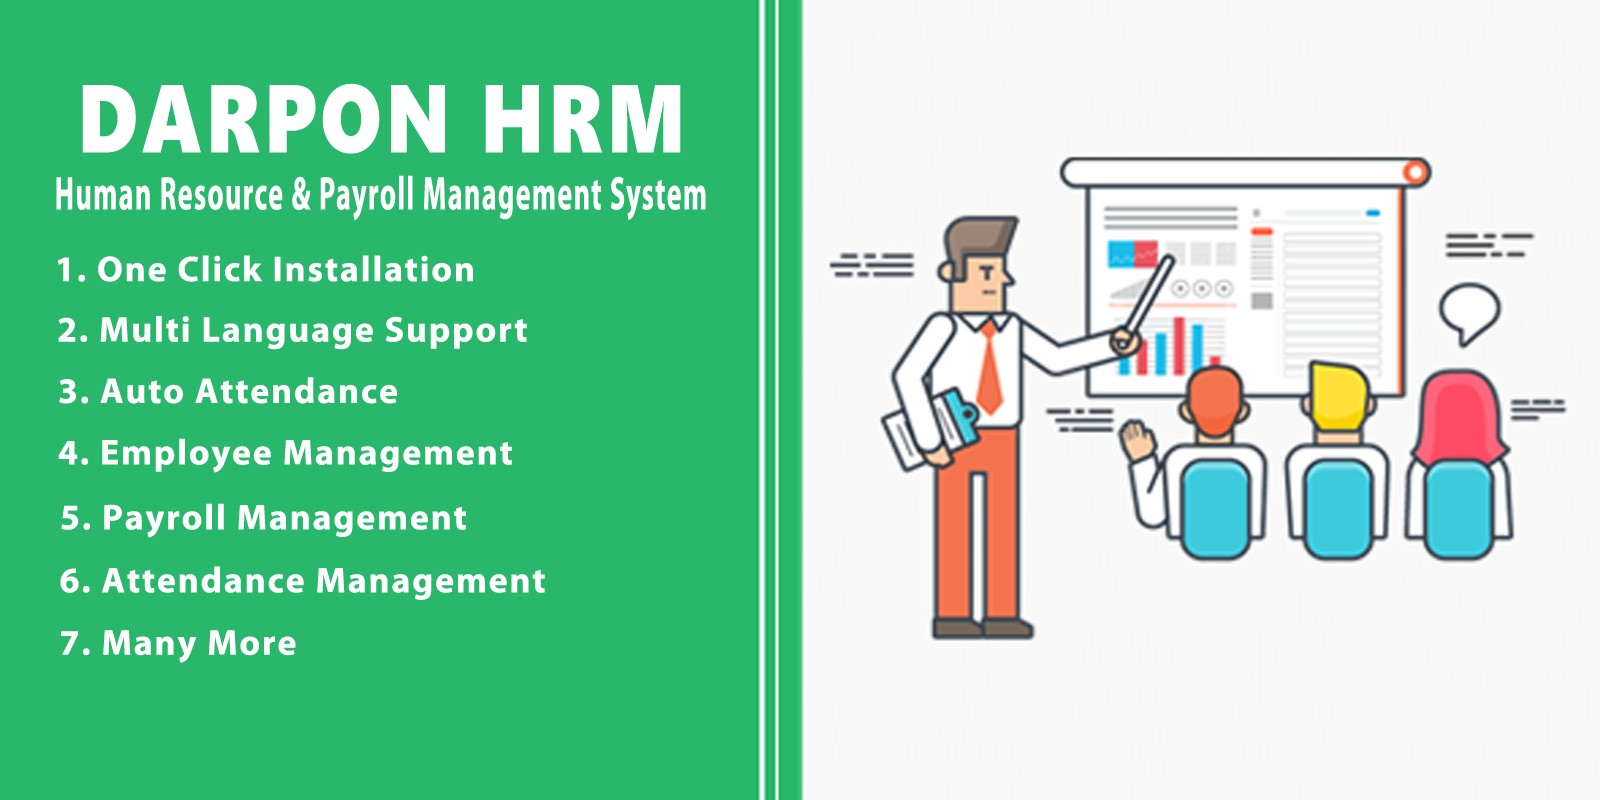 Darpon HRM - Human Resource Payroll Management